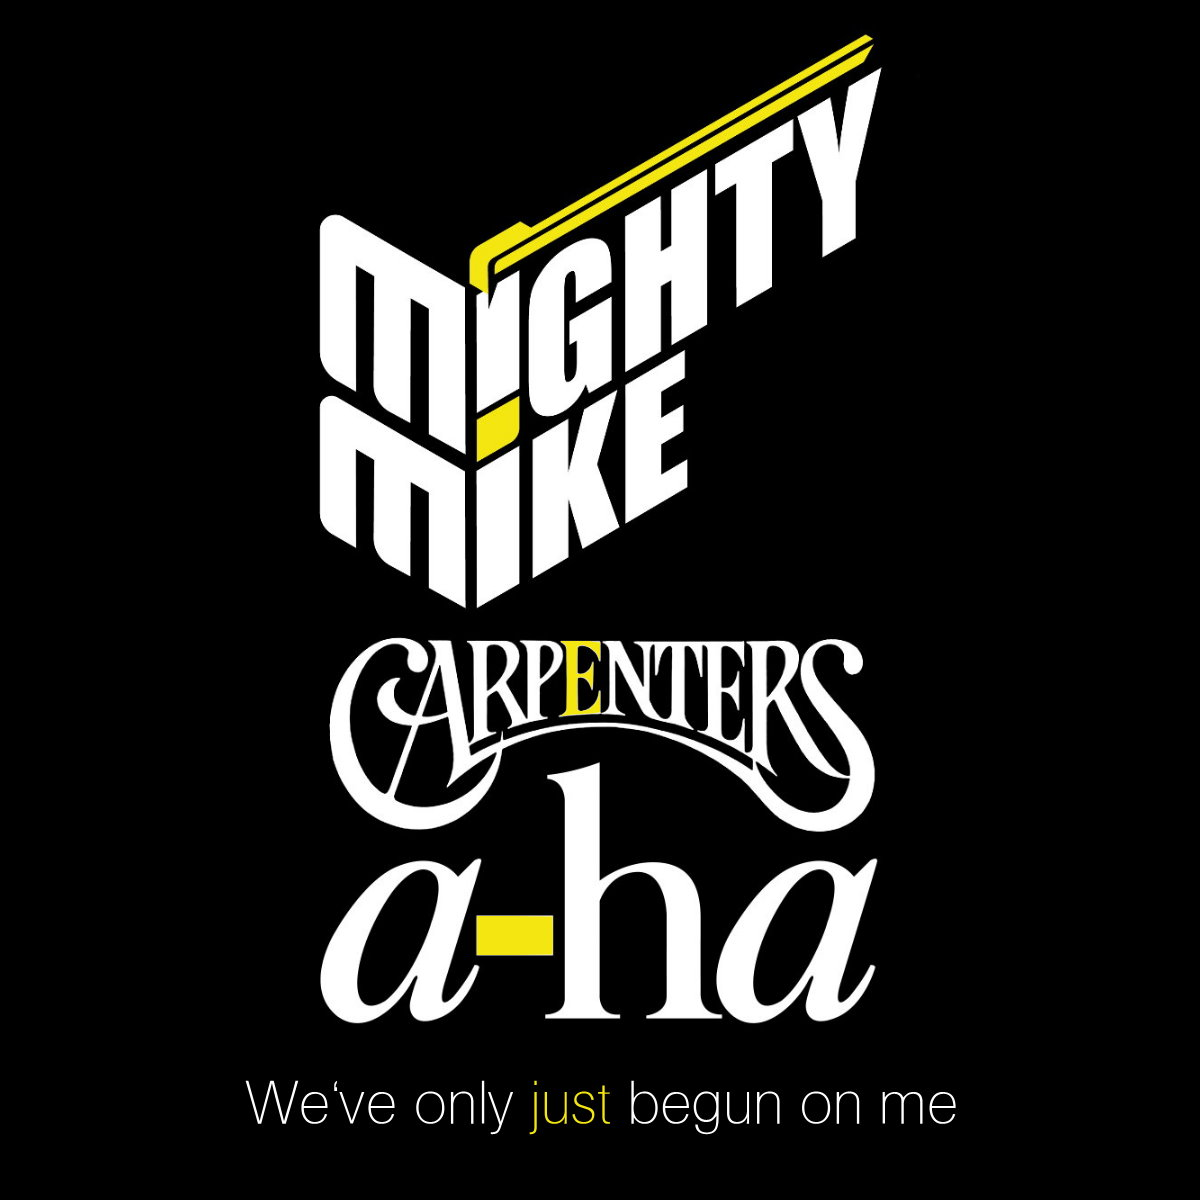 We've only just begun on me (A-ha / Carpenters) (2020)